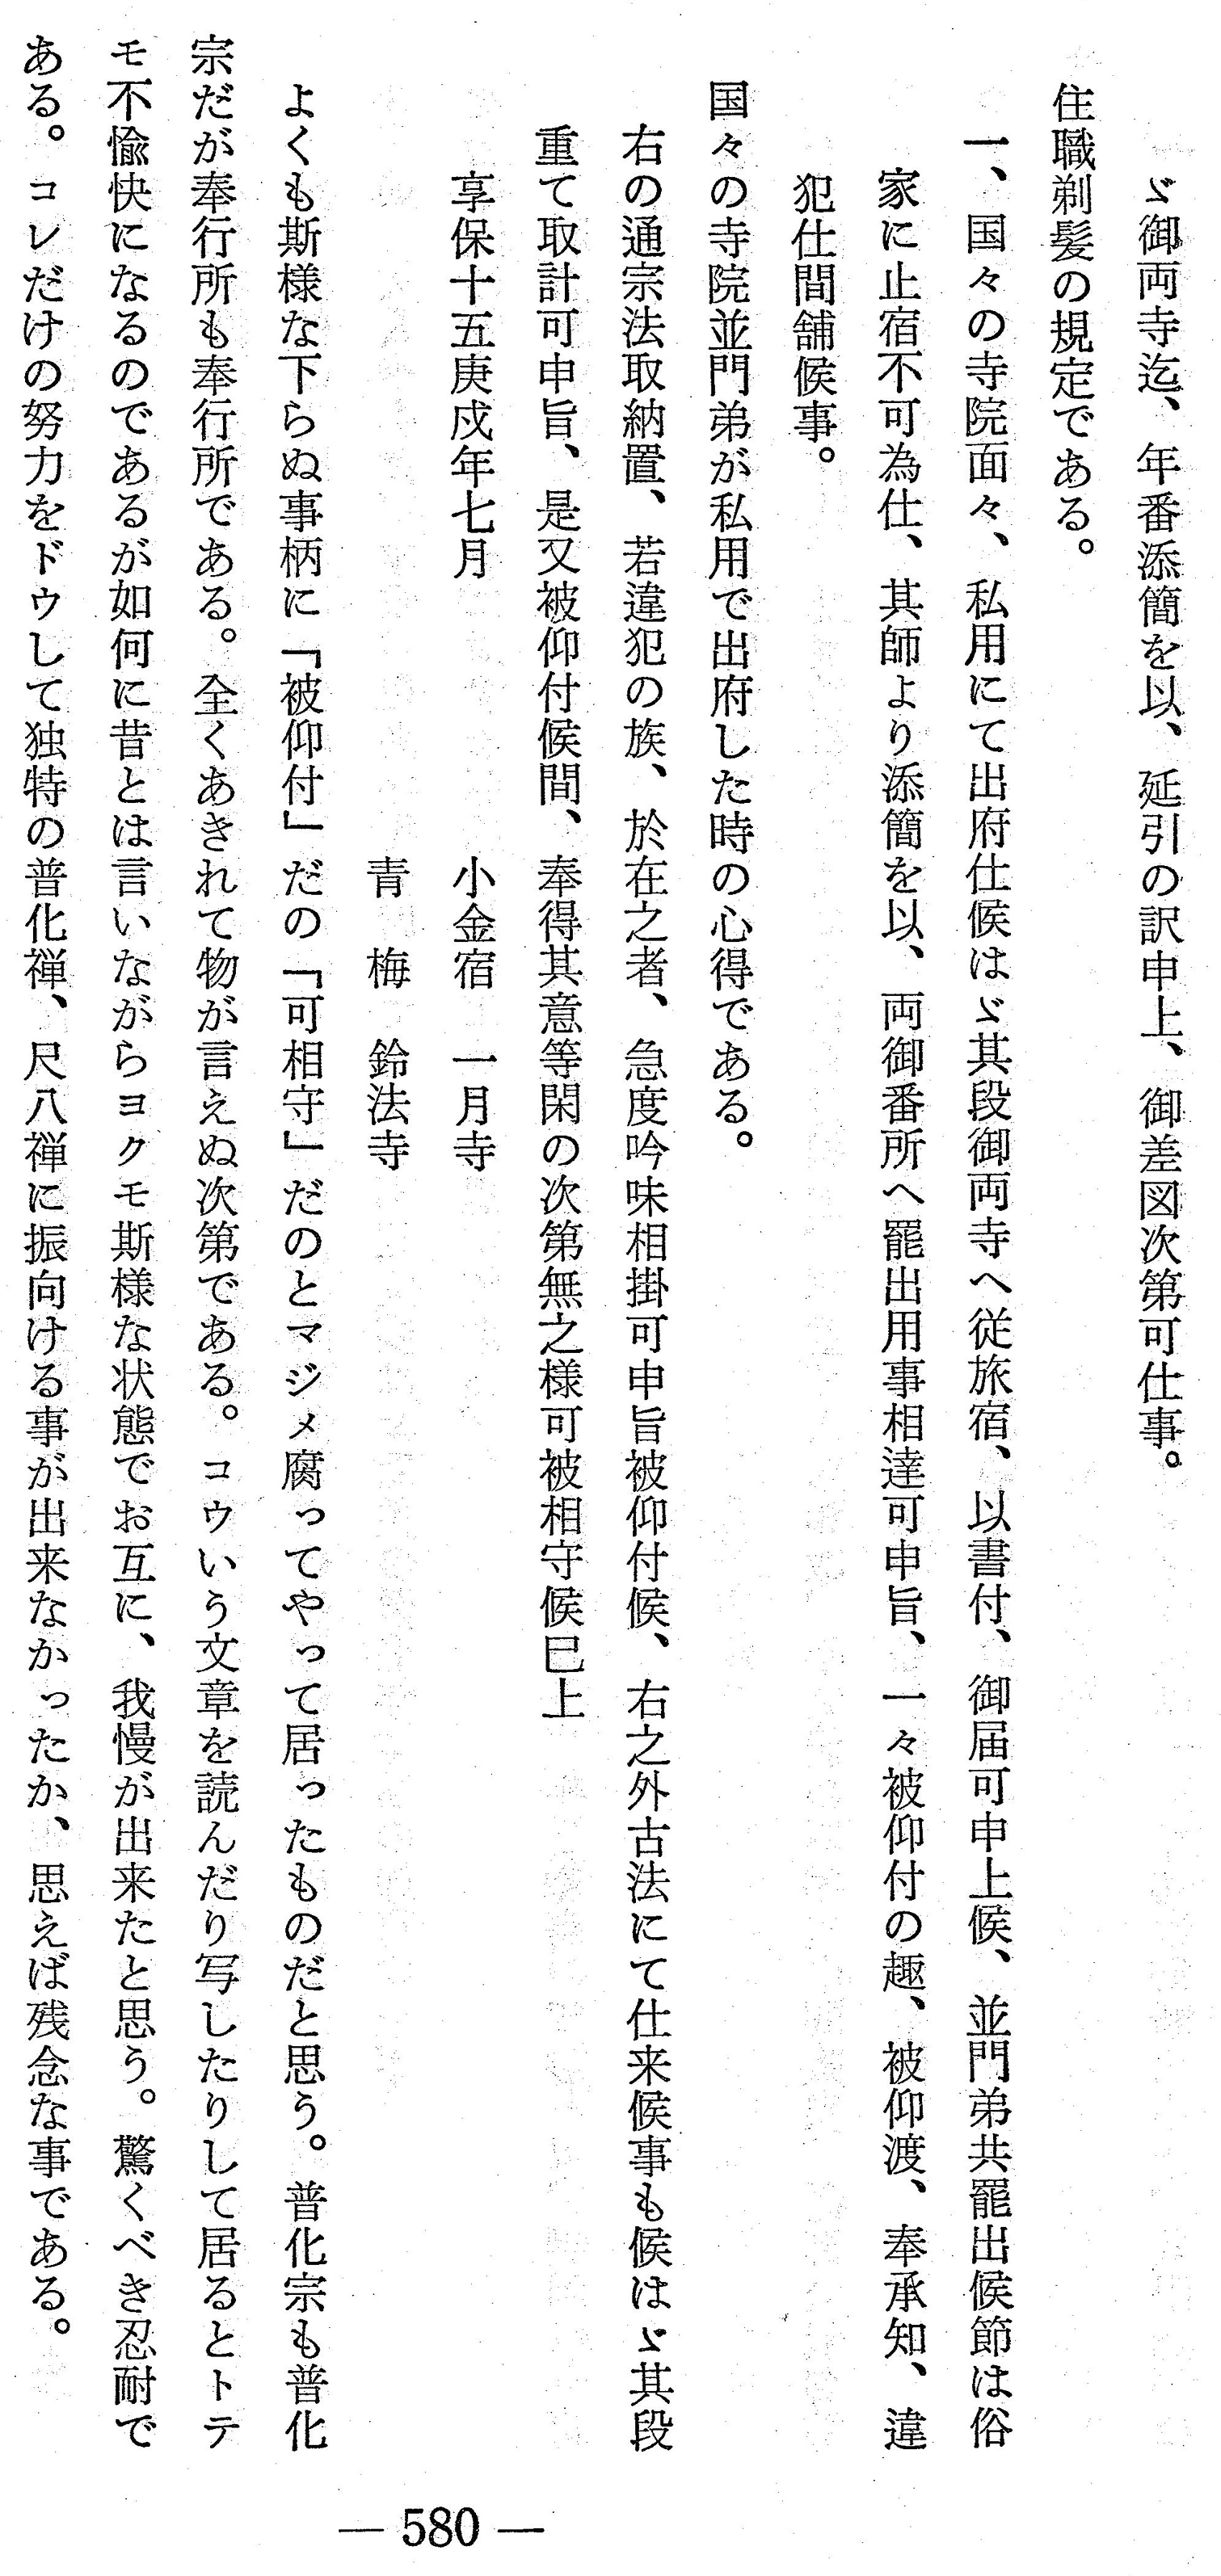 The 1730 Ichigetsu-ji and Reihō Temple Memorandum